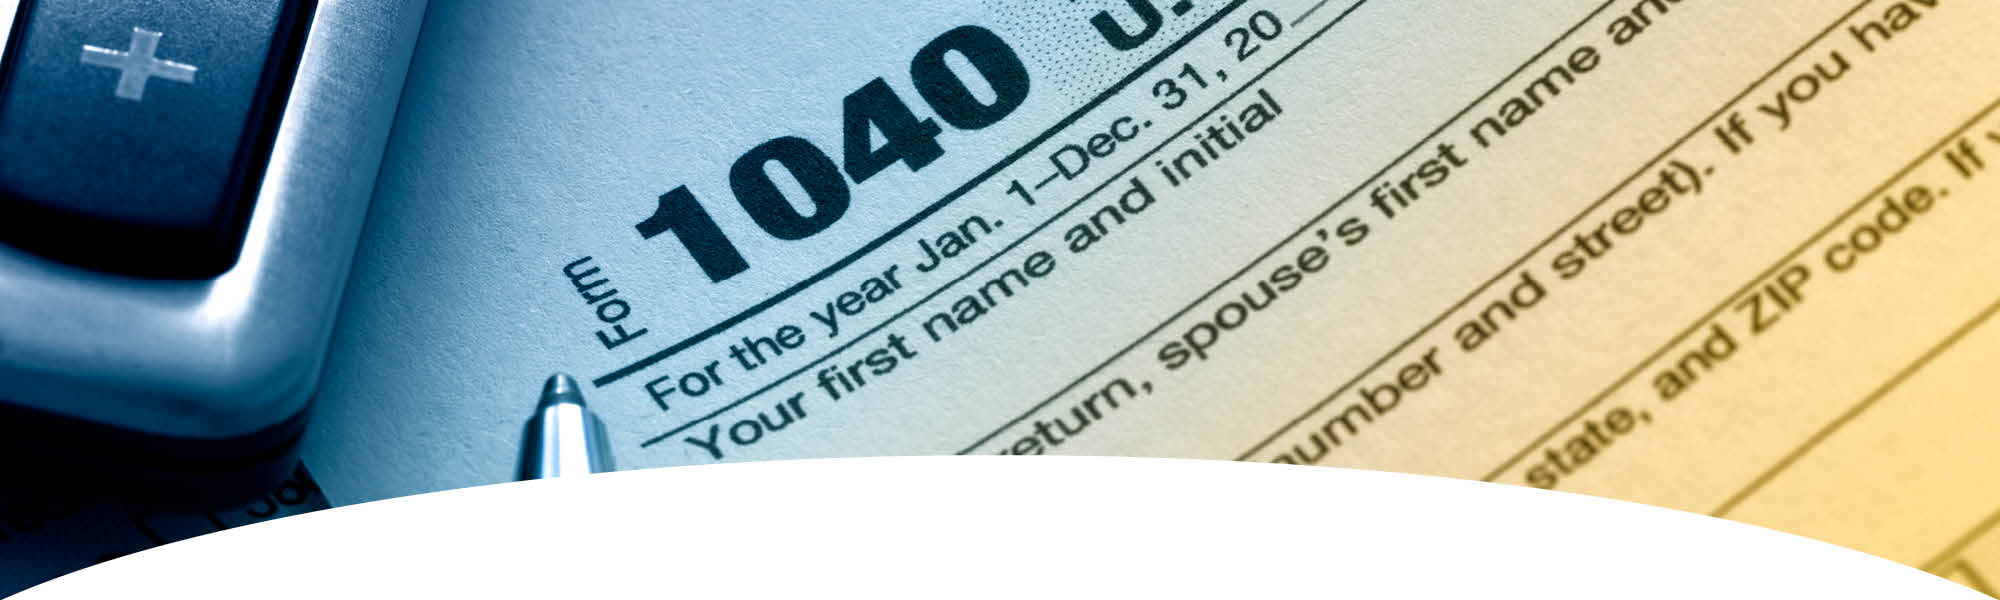 Register for Free Tax Prep - 1040 tax form